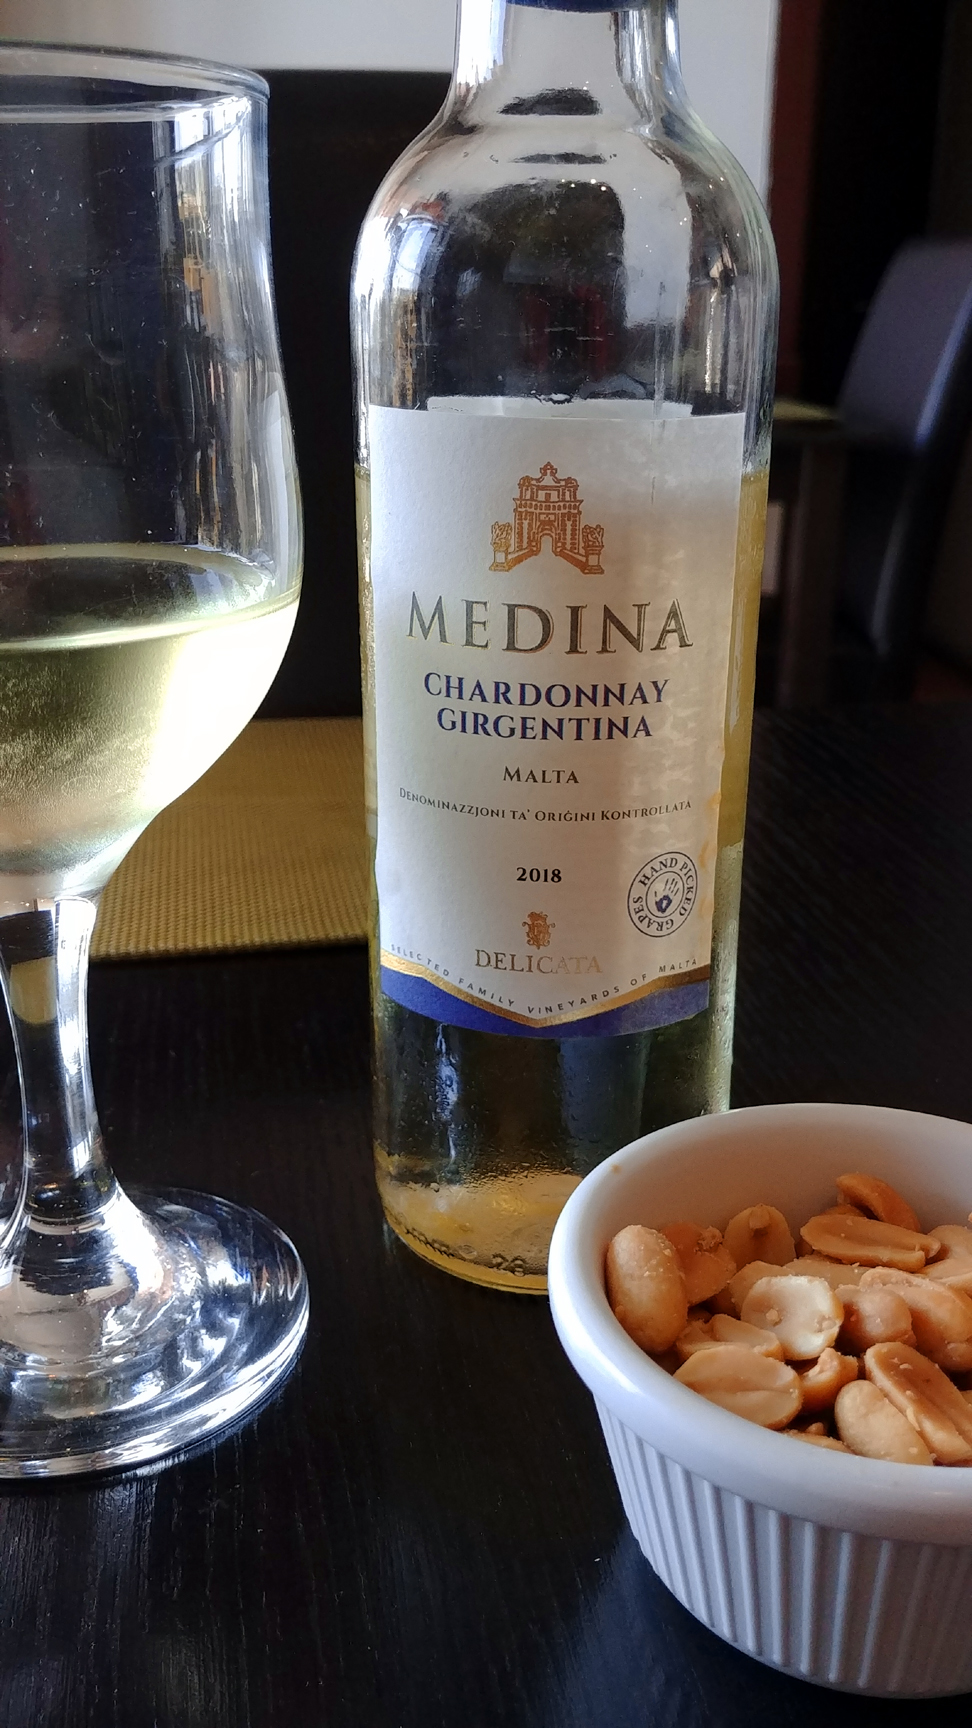 Maltese Chardonnay from Girgentina grapes. Photo: Mary Charlebois